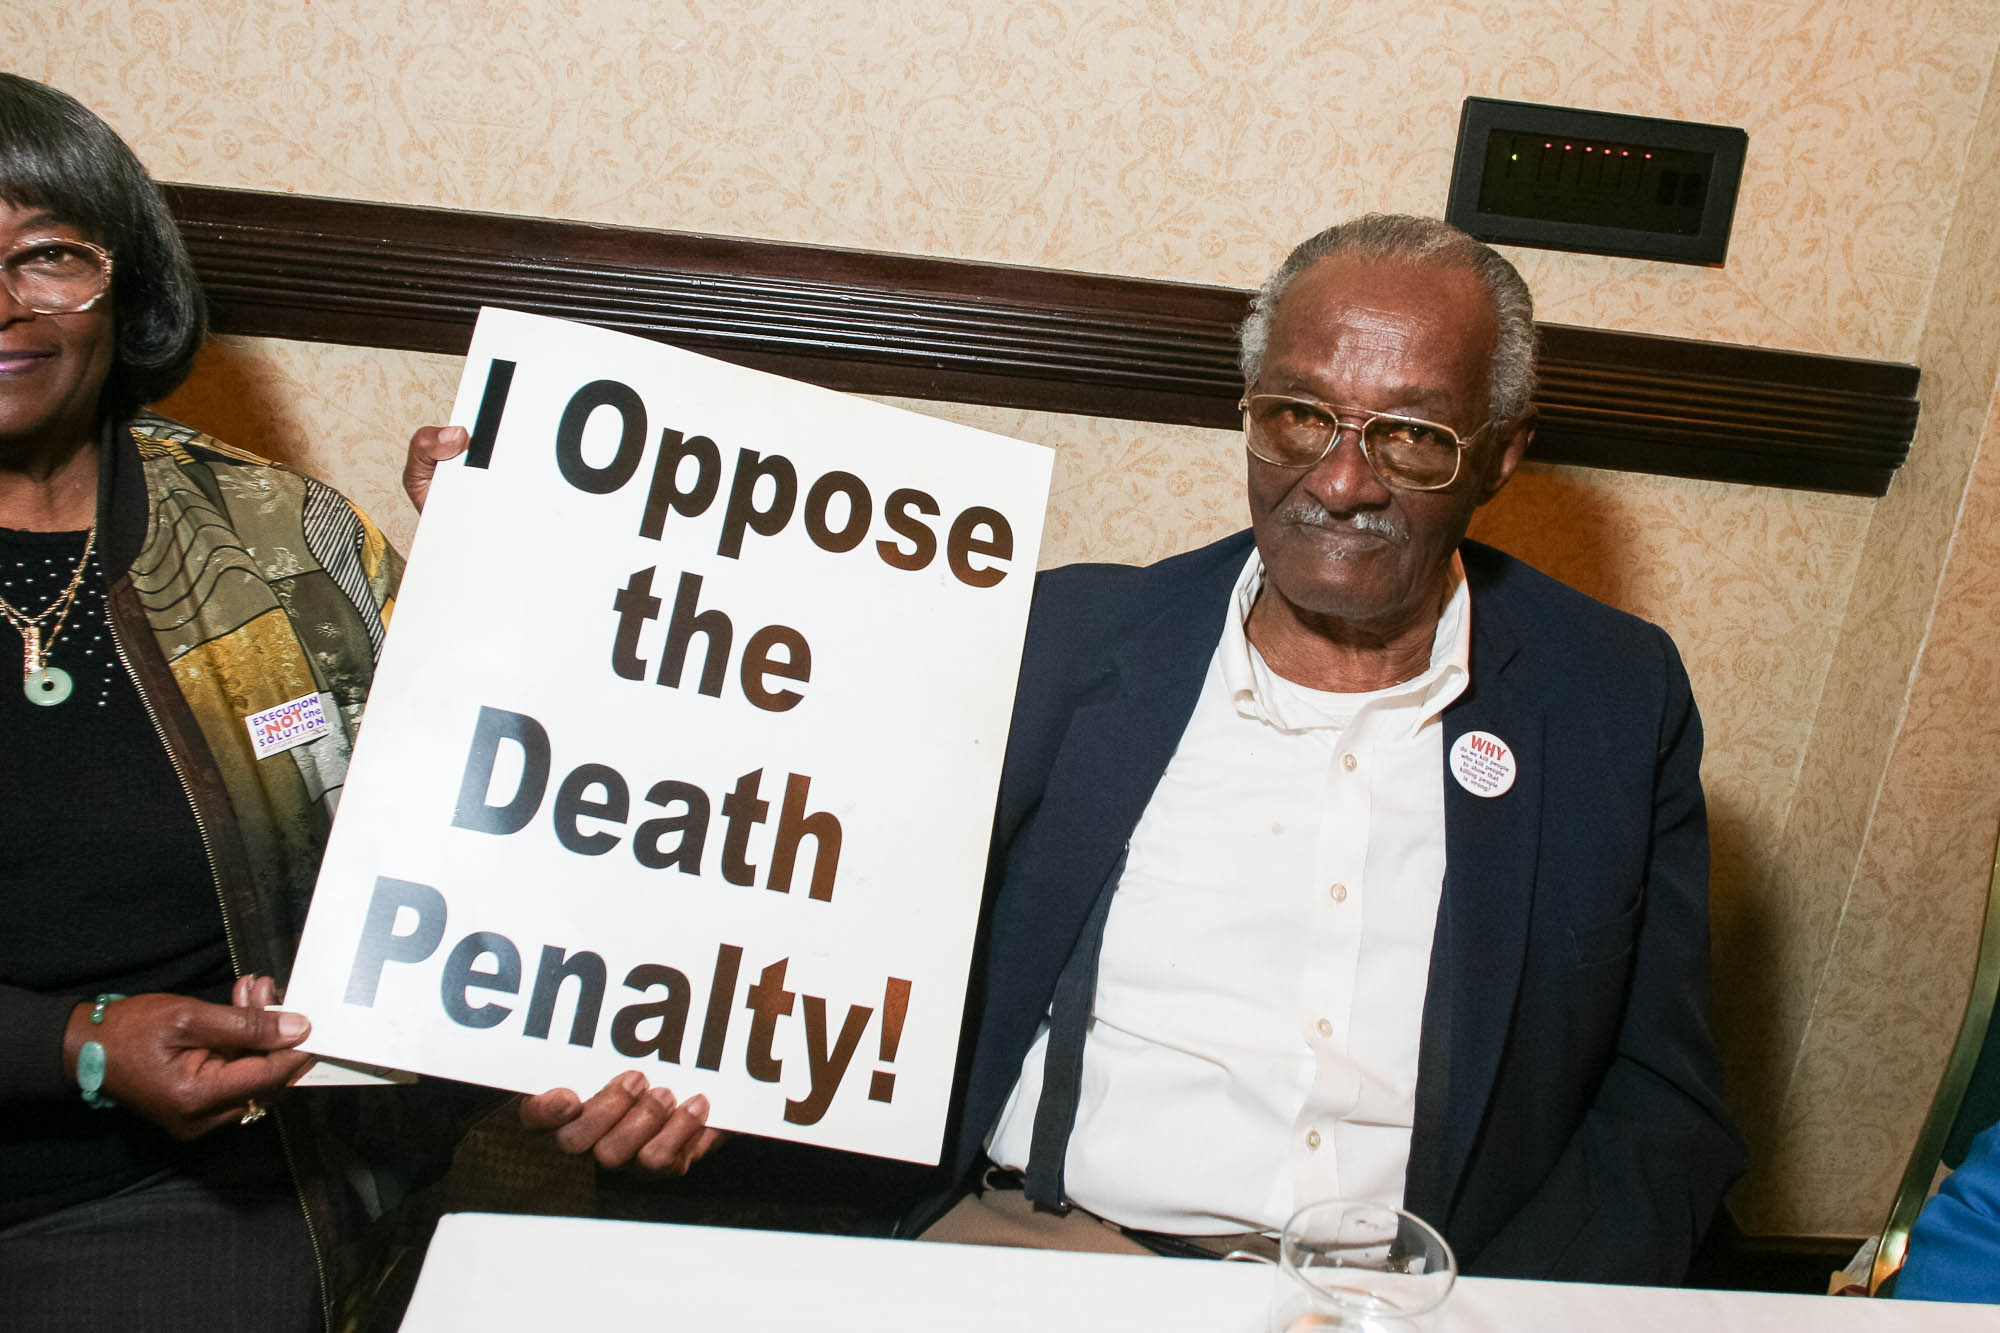 Maurice Bickman - Furman release - Louisiana - death row innocent, wrongful conviction, exonerated